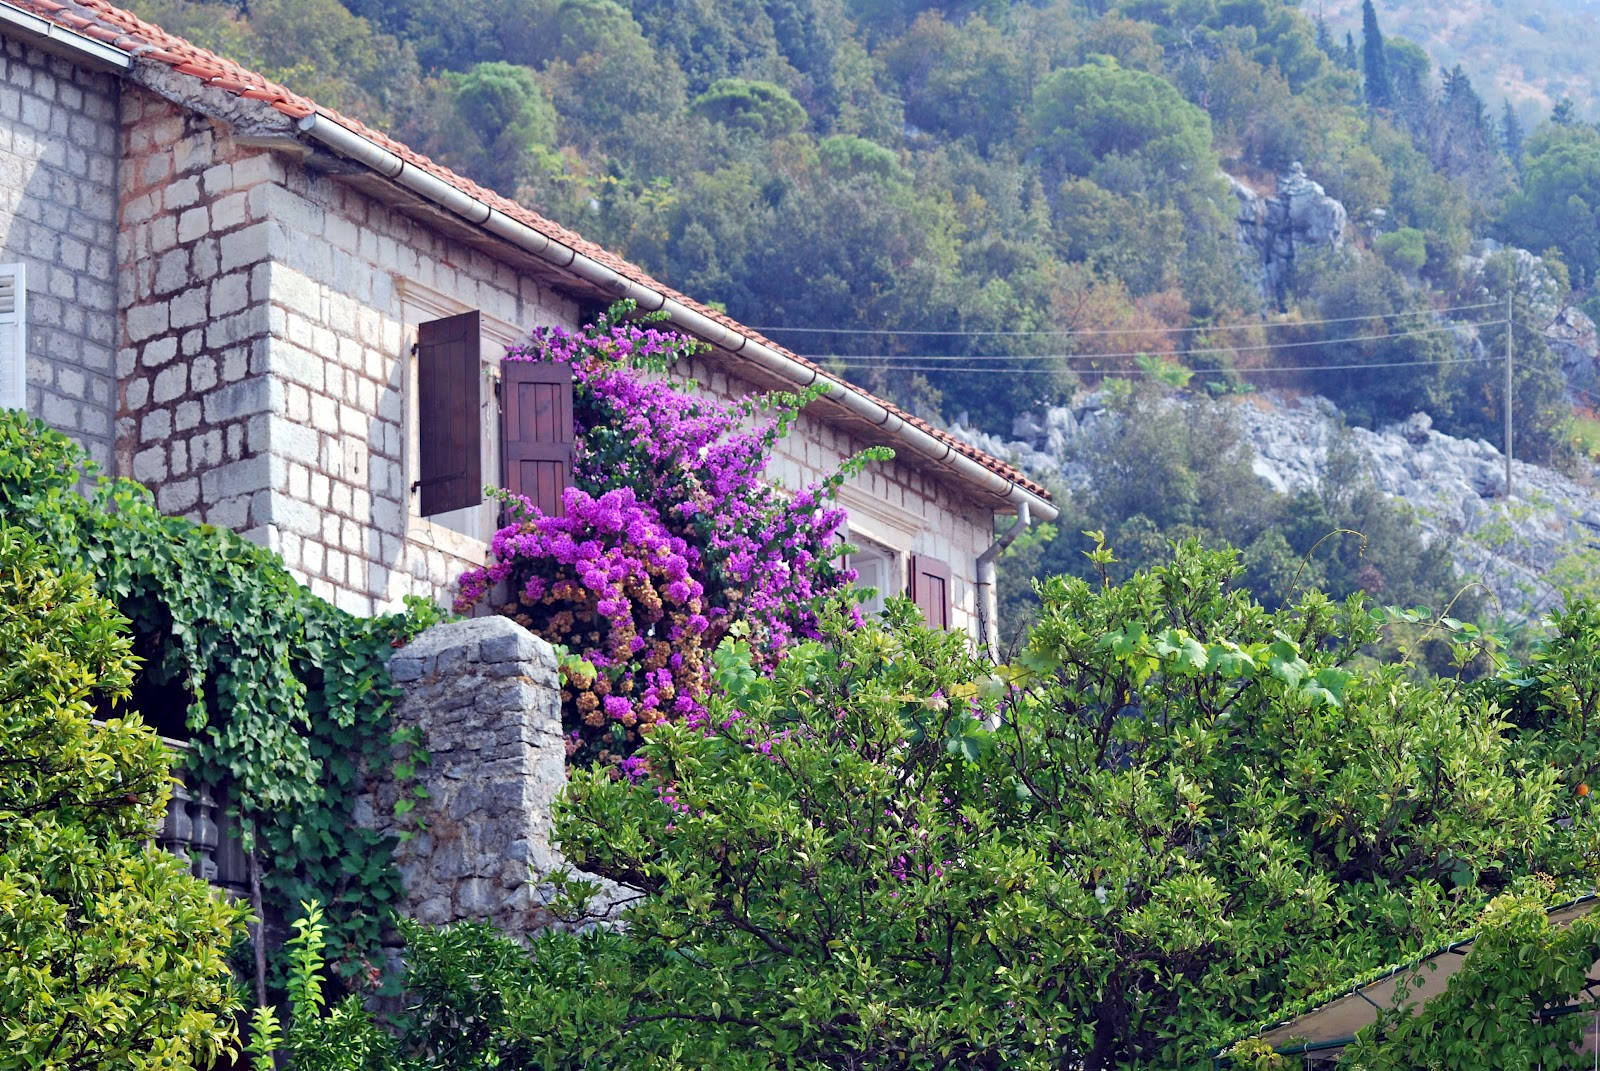 One of many beautiful stone houses in Perast